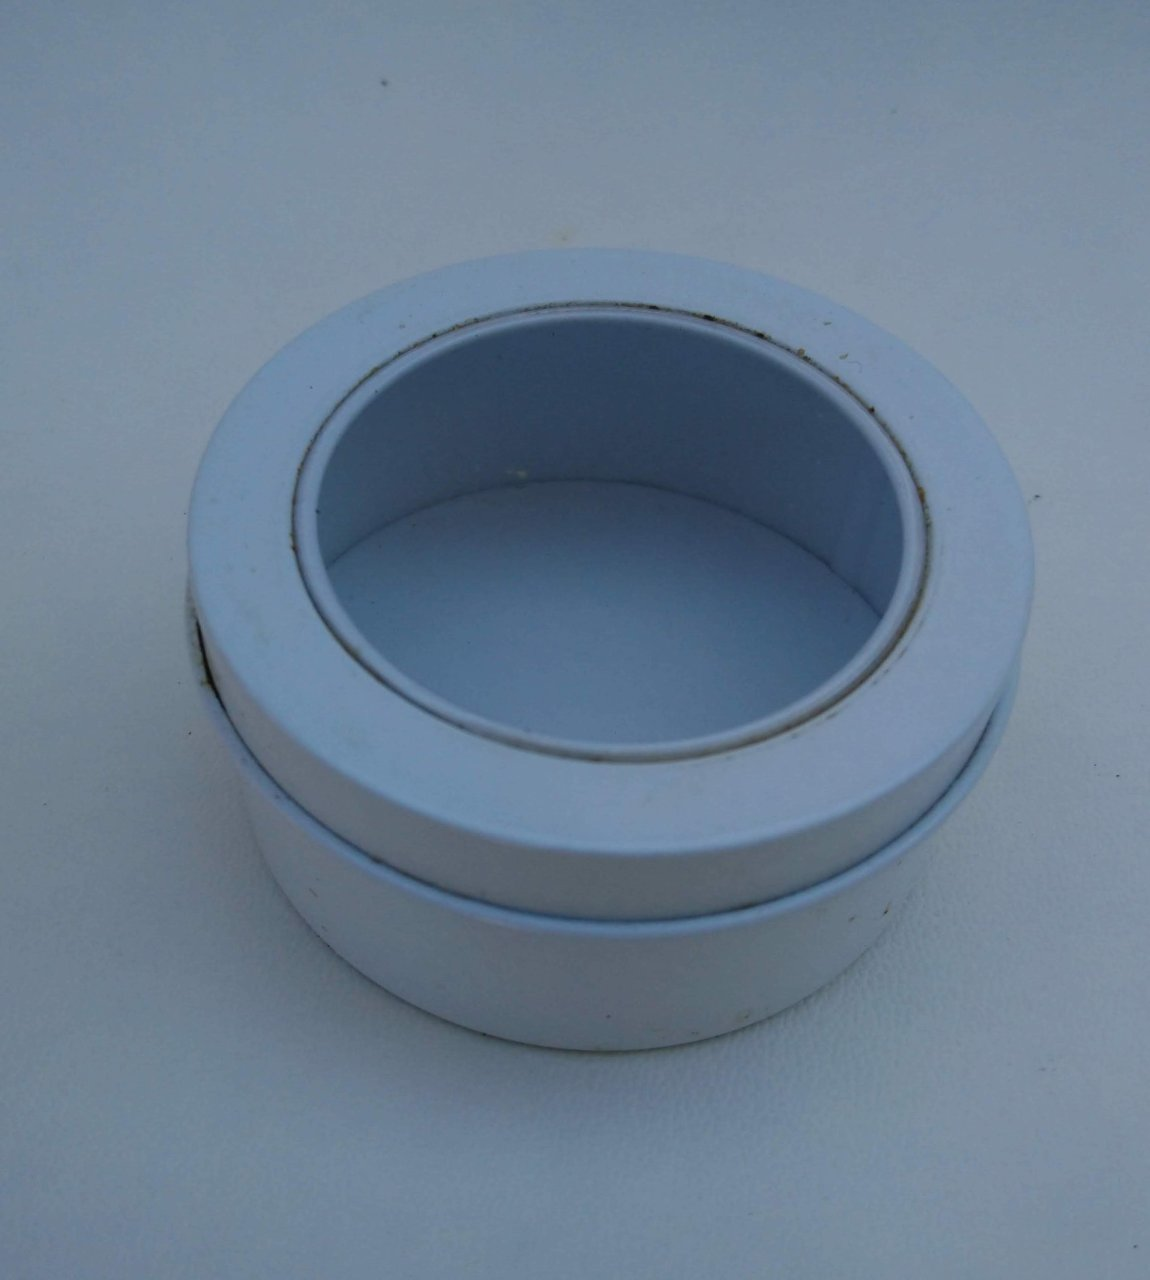 Window Tins South Africa, White Mini Window Tins from Can It South Africa